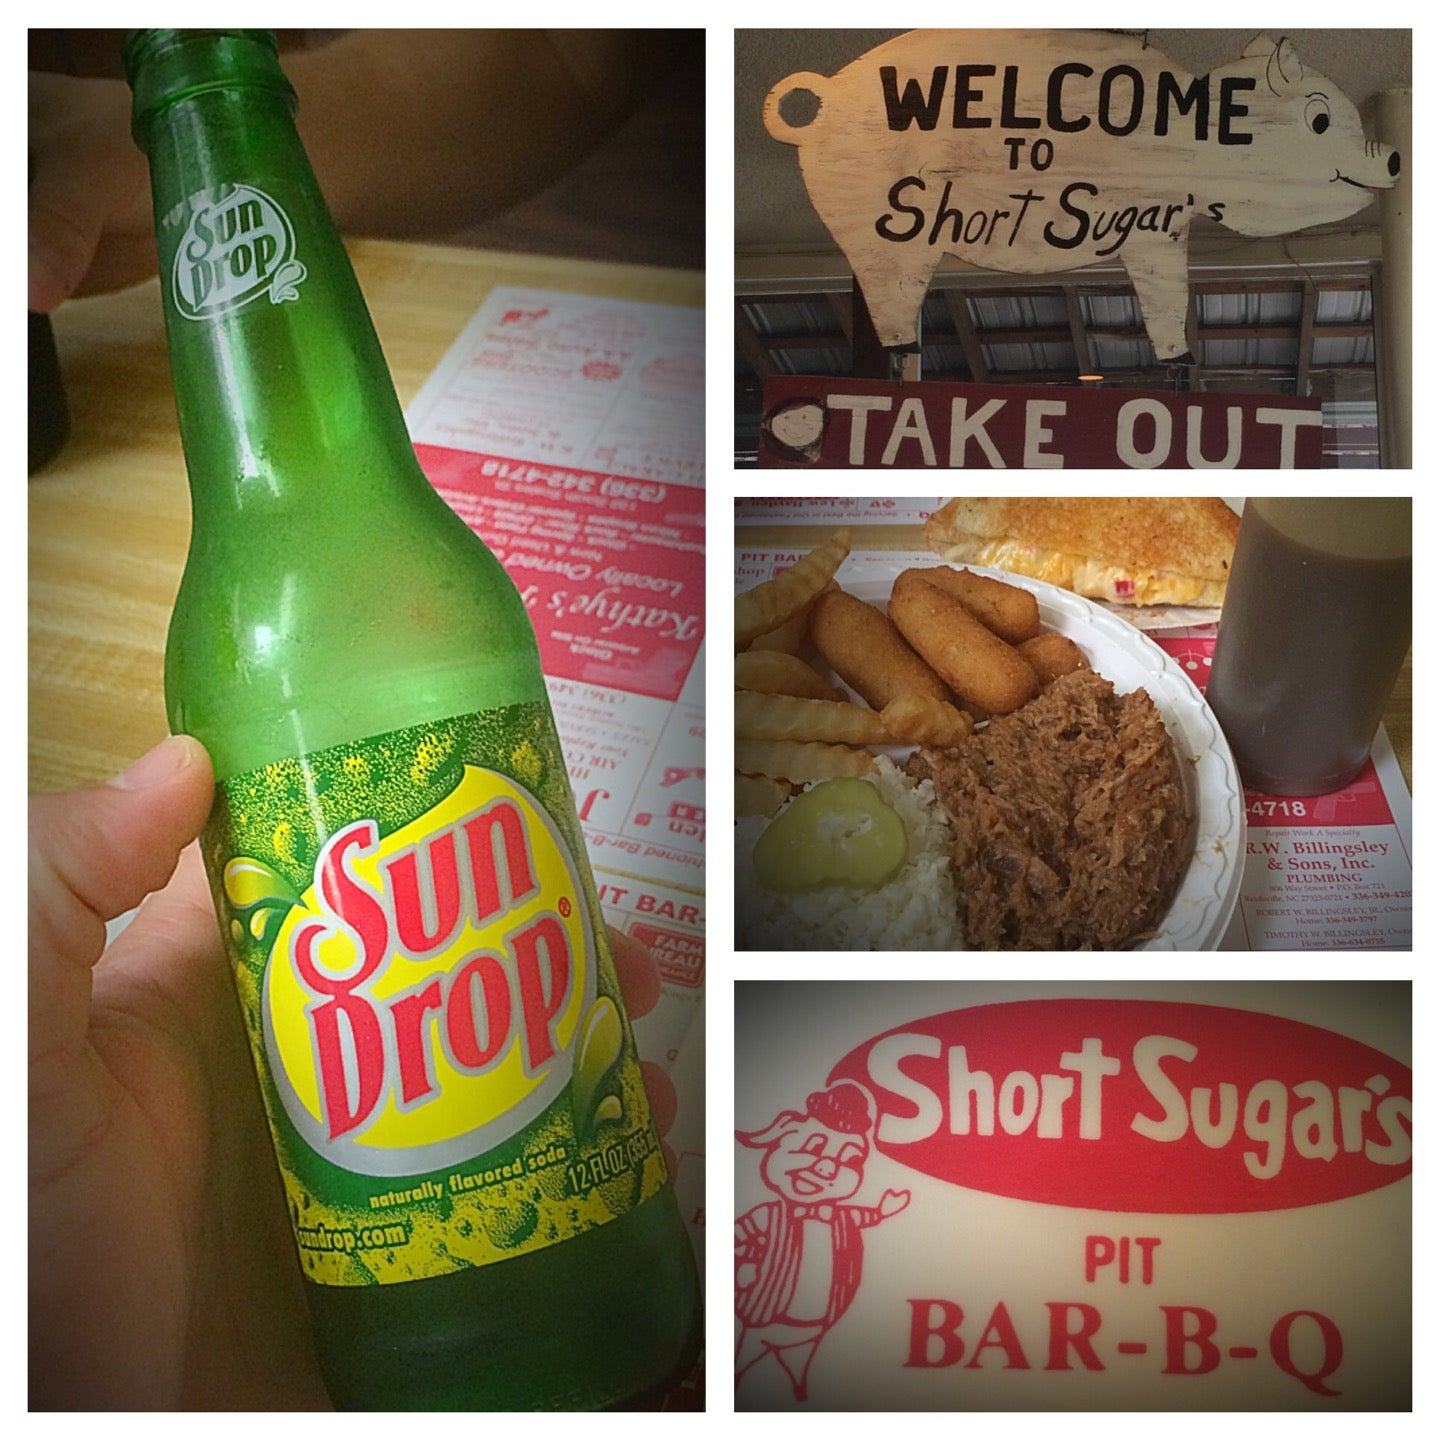 Short Sugars Drive In,